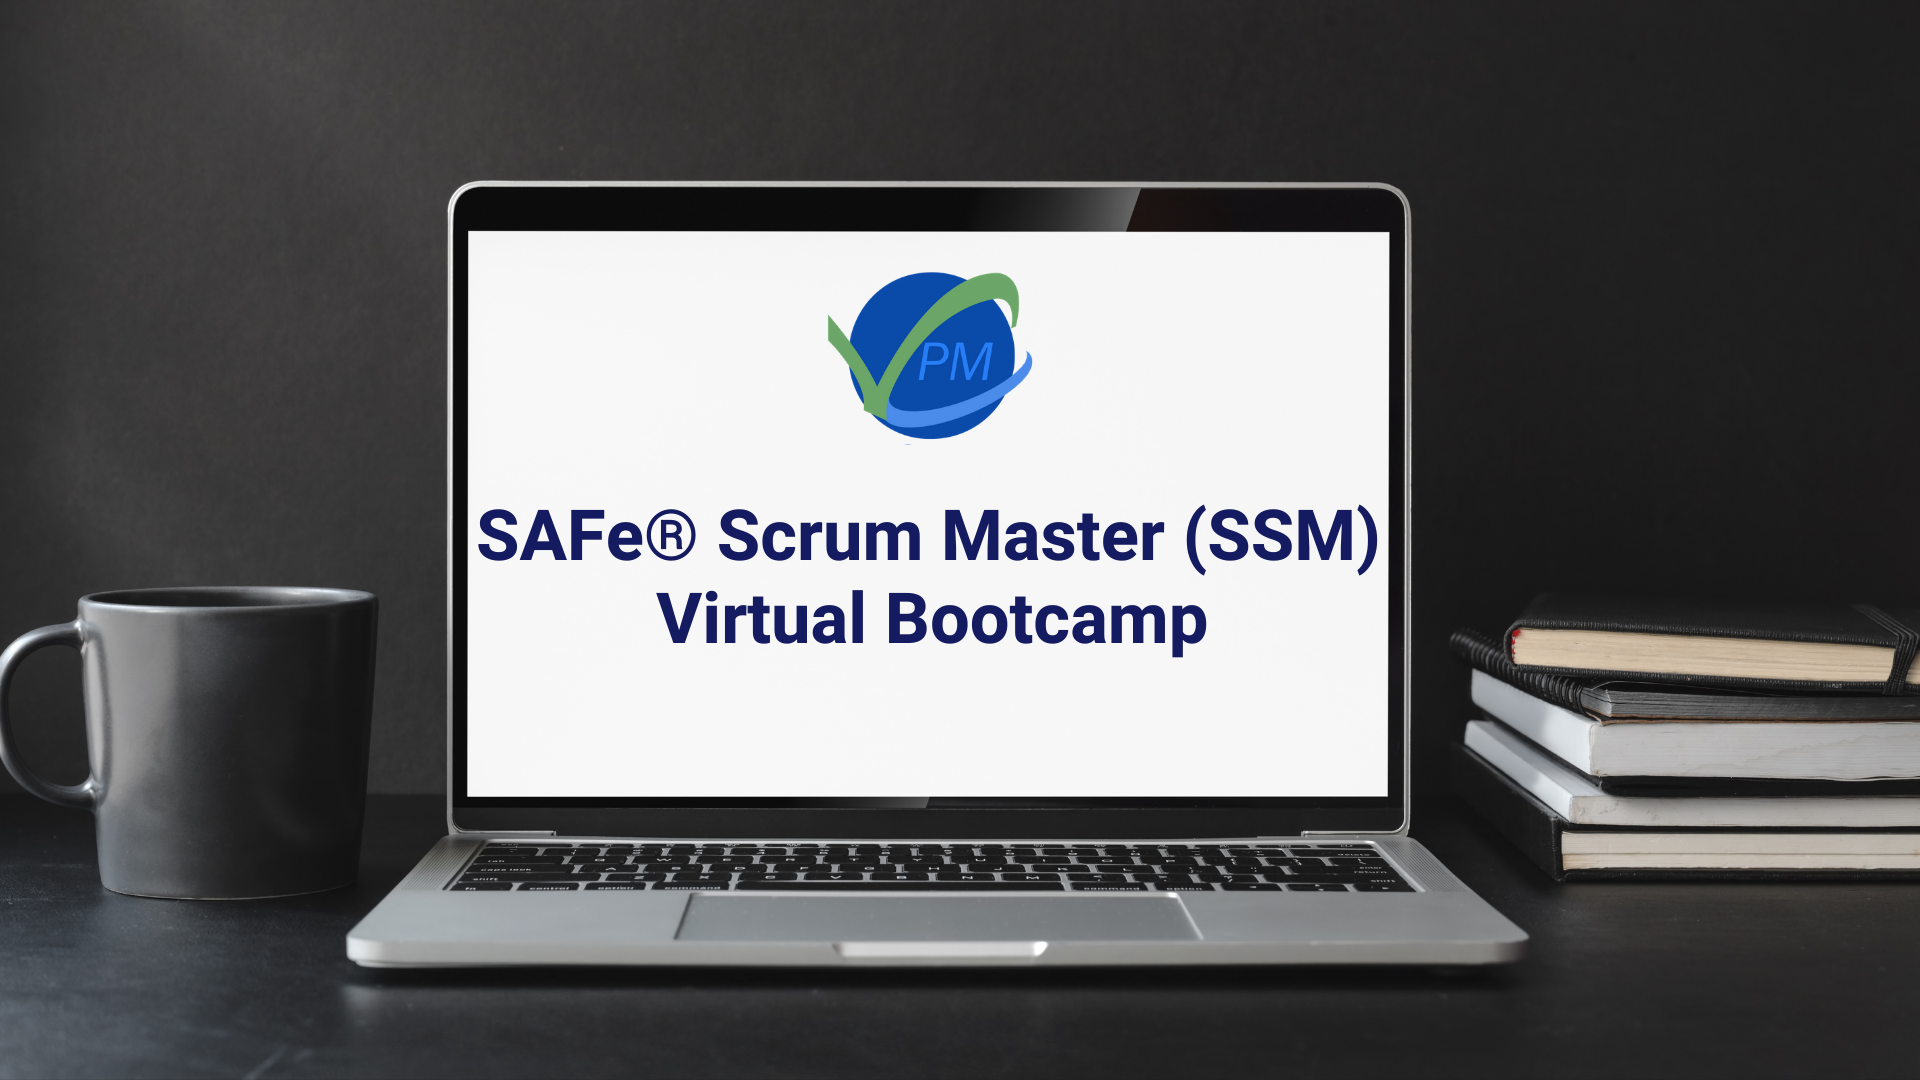 SAFe Scrum Master Online Virtual Bootcamp, June 5 - 6, 2021 [USA Time Zone]